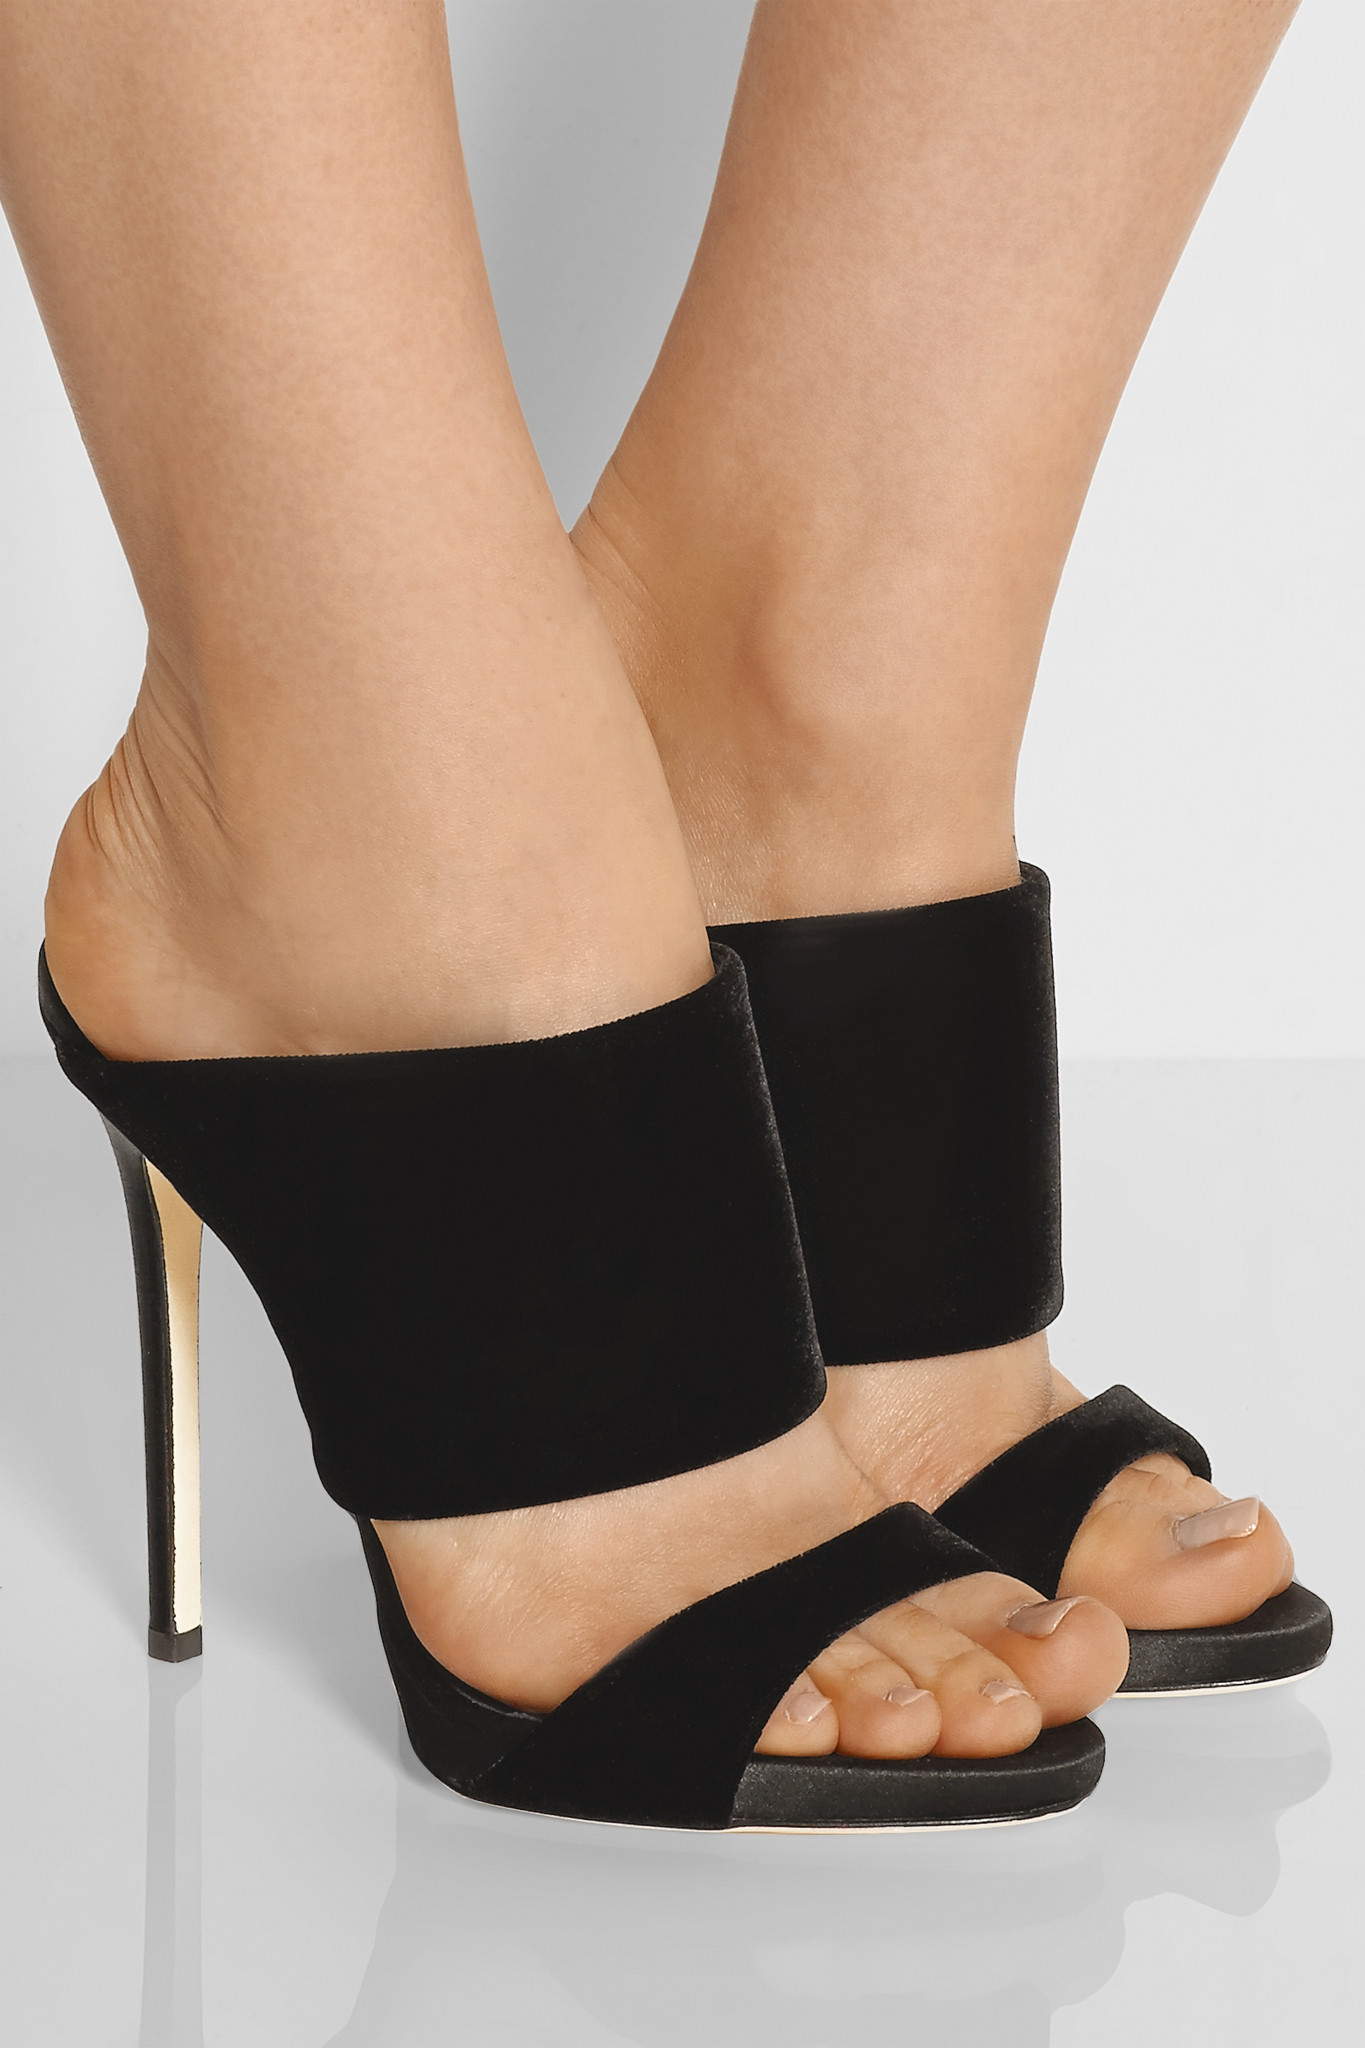 7fb225447216 ... Cruel Coline Wing Embellished High-Heel Sandals ... Lyst - Giuseppe  Zanotti Coline Velvet Mules in Black another chance 5e44d c4507 ...